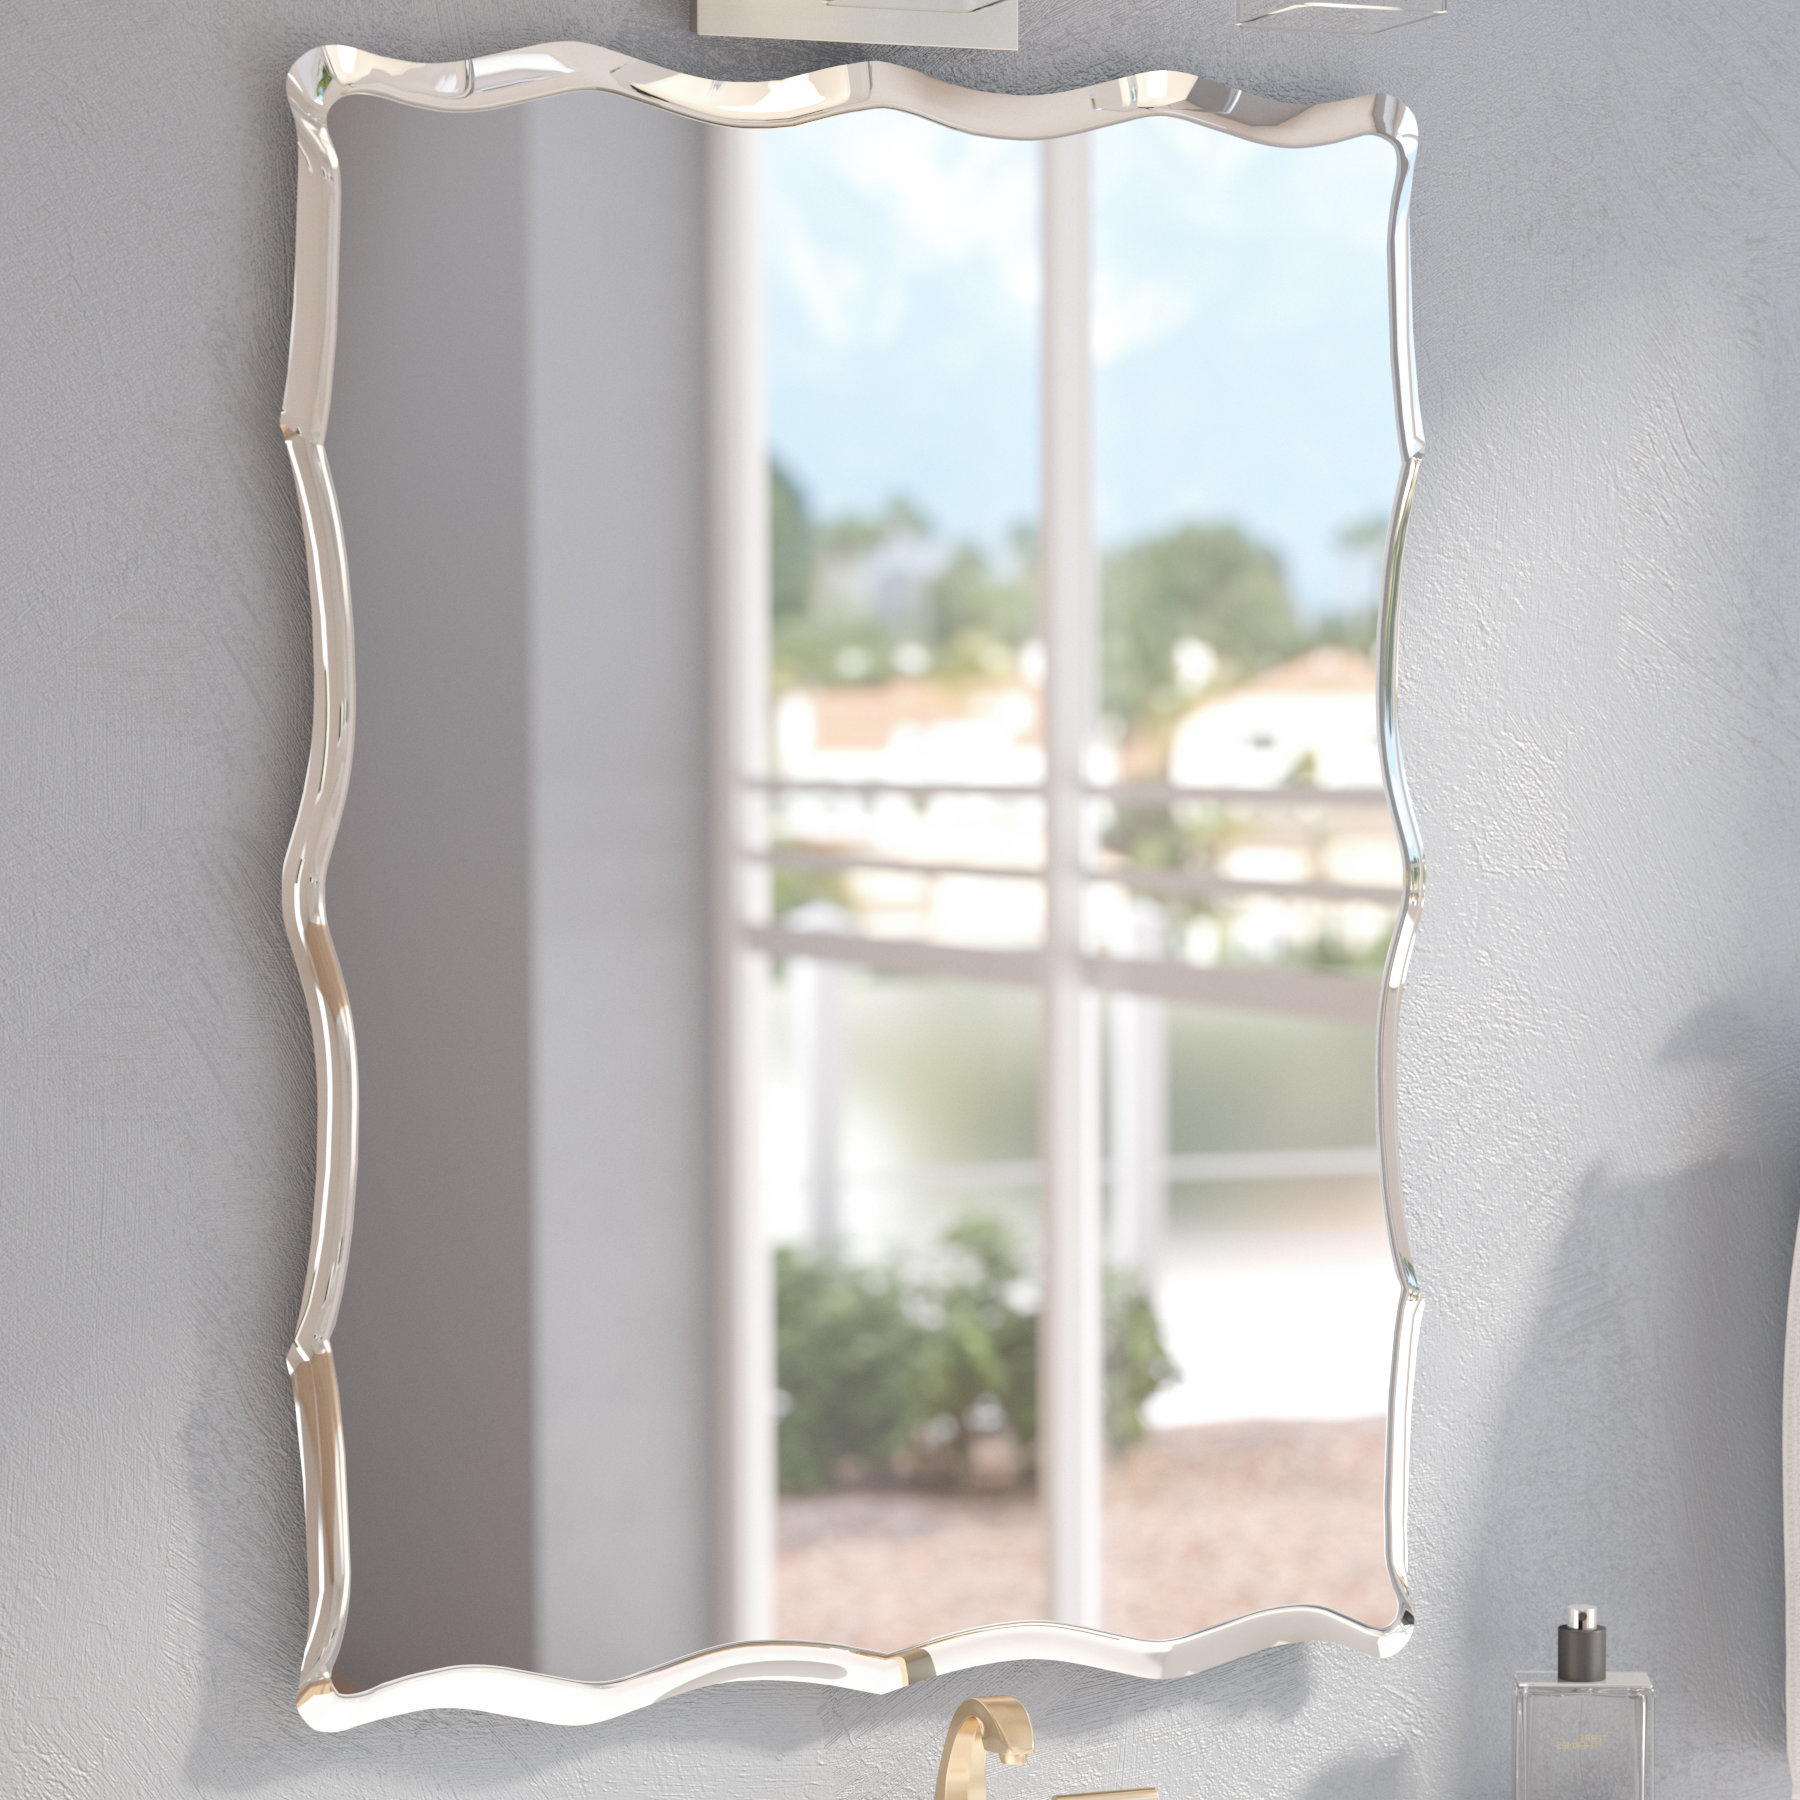 Estefania Frameless Wall Mirror With Newest Estefania Frameless Wall Mirrors (View 7 of 20)